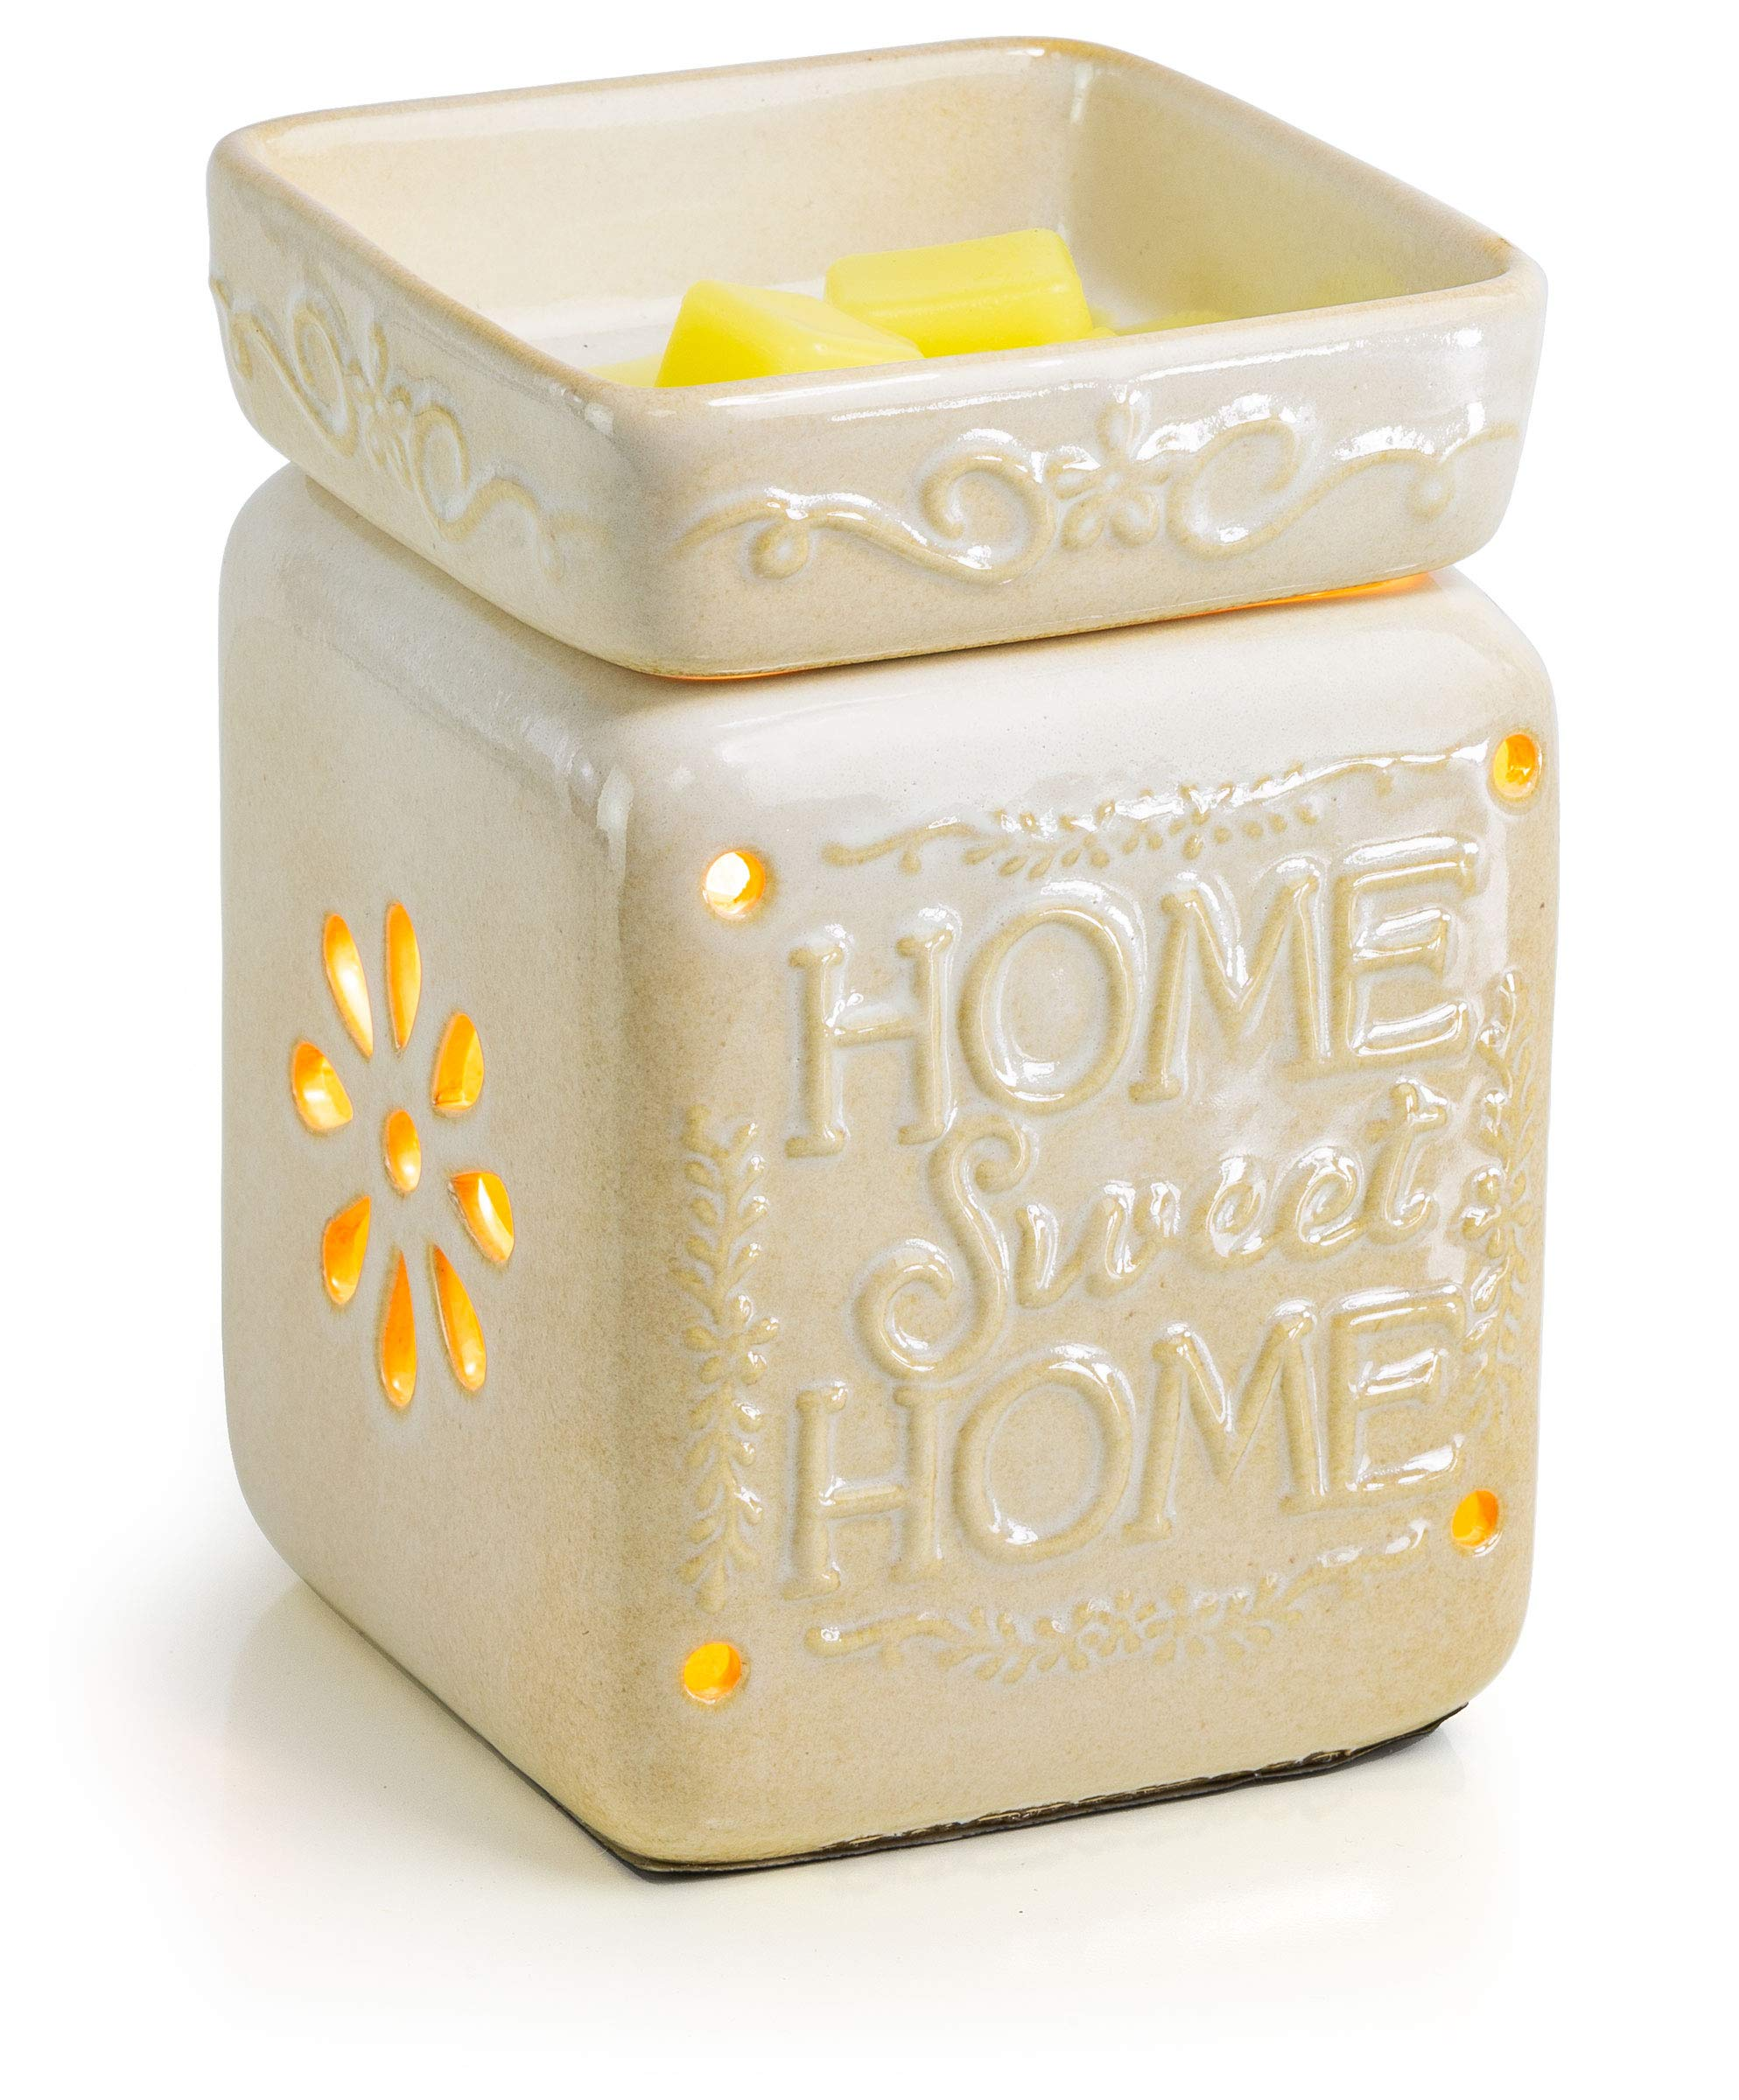 Ceramic Fragrance Warmer (Home Sweet Home) by VP Home